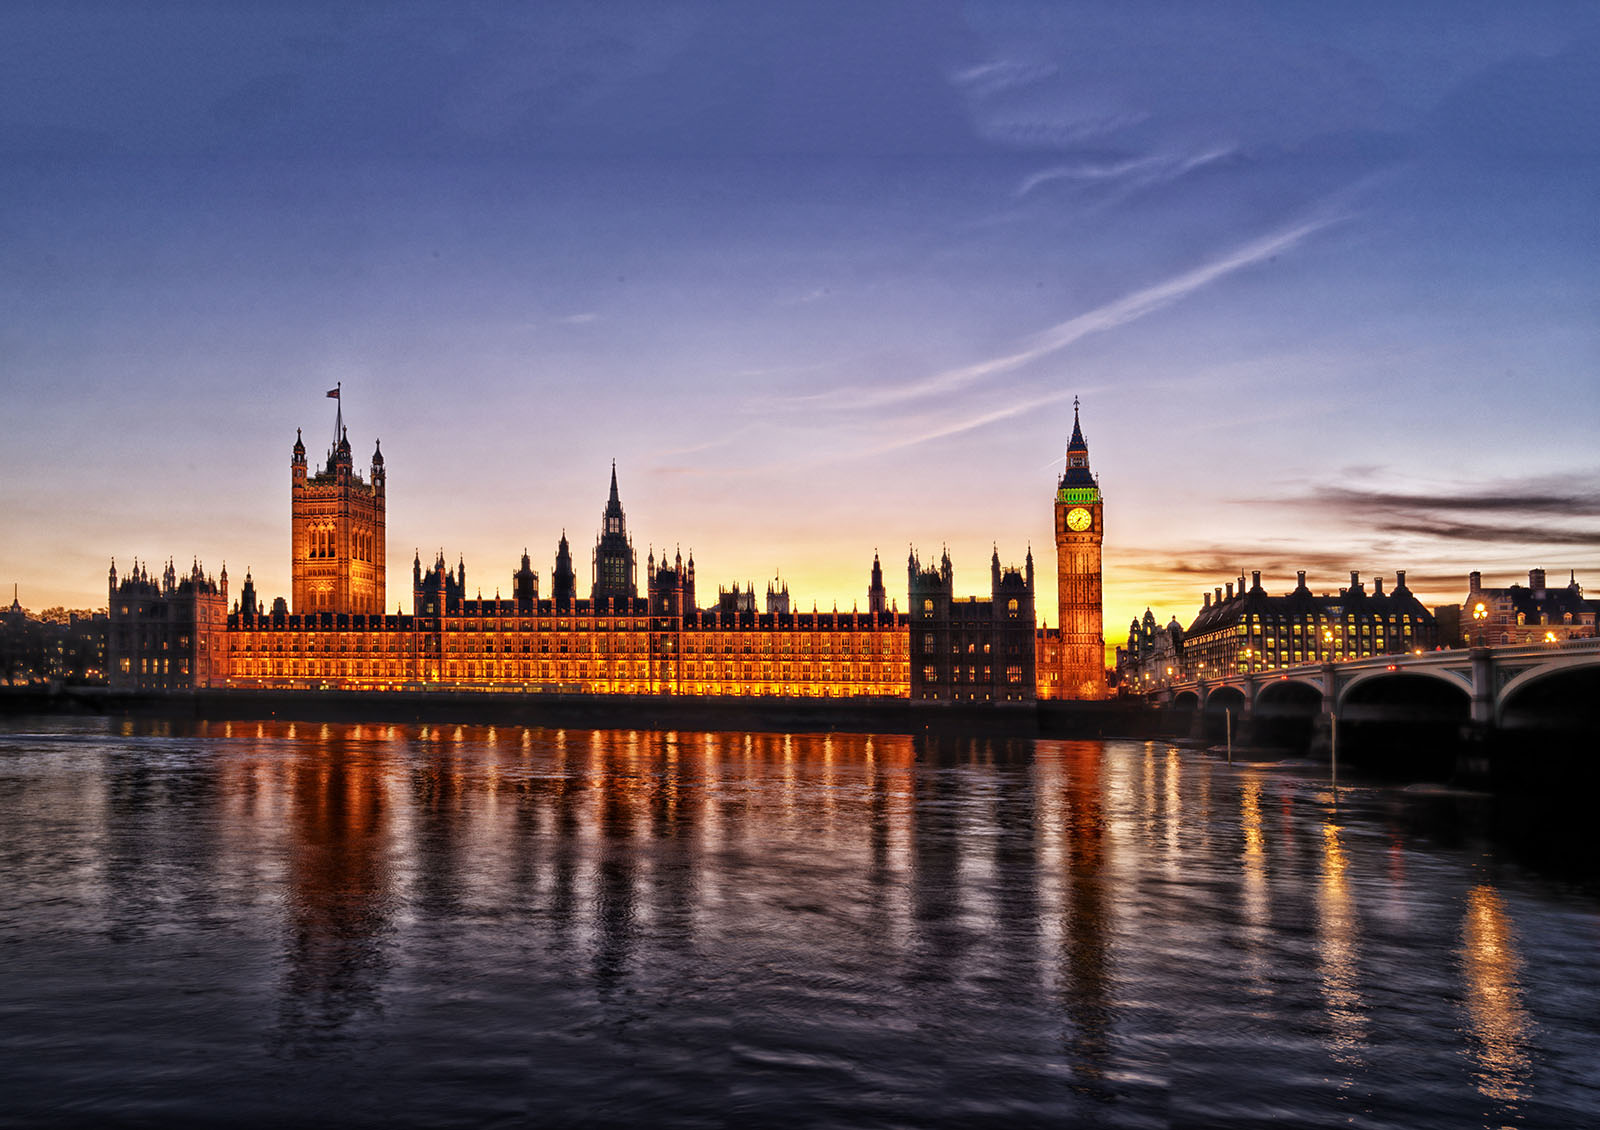 Westminster Palace from the opposite side of the Thames at dusk.